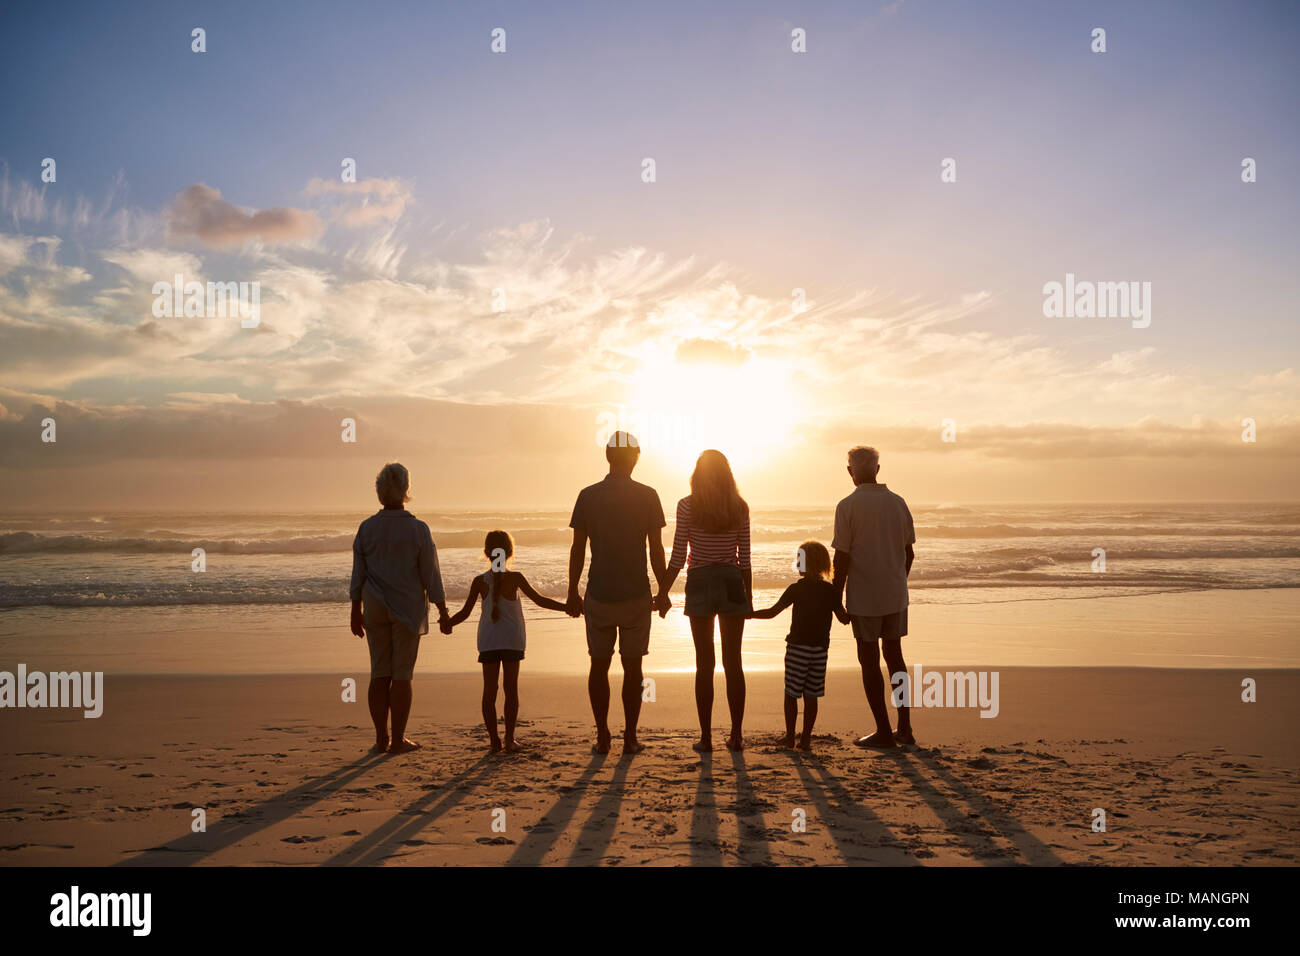 Rear View Of Multi Generation Family Silhouetted On Beach - Stock Image